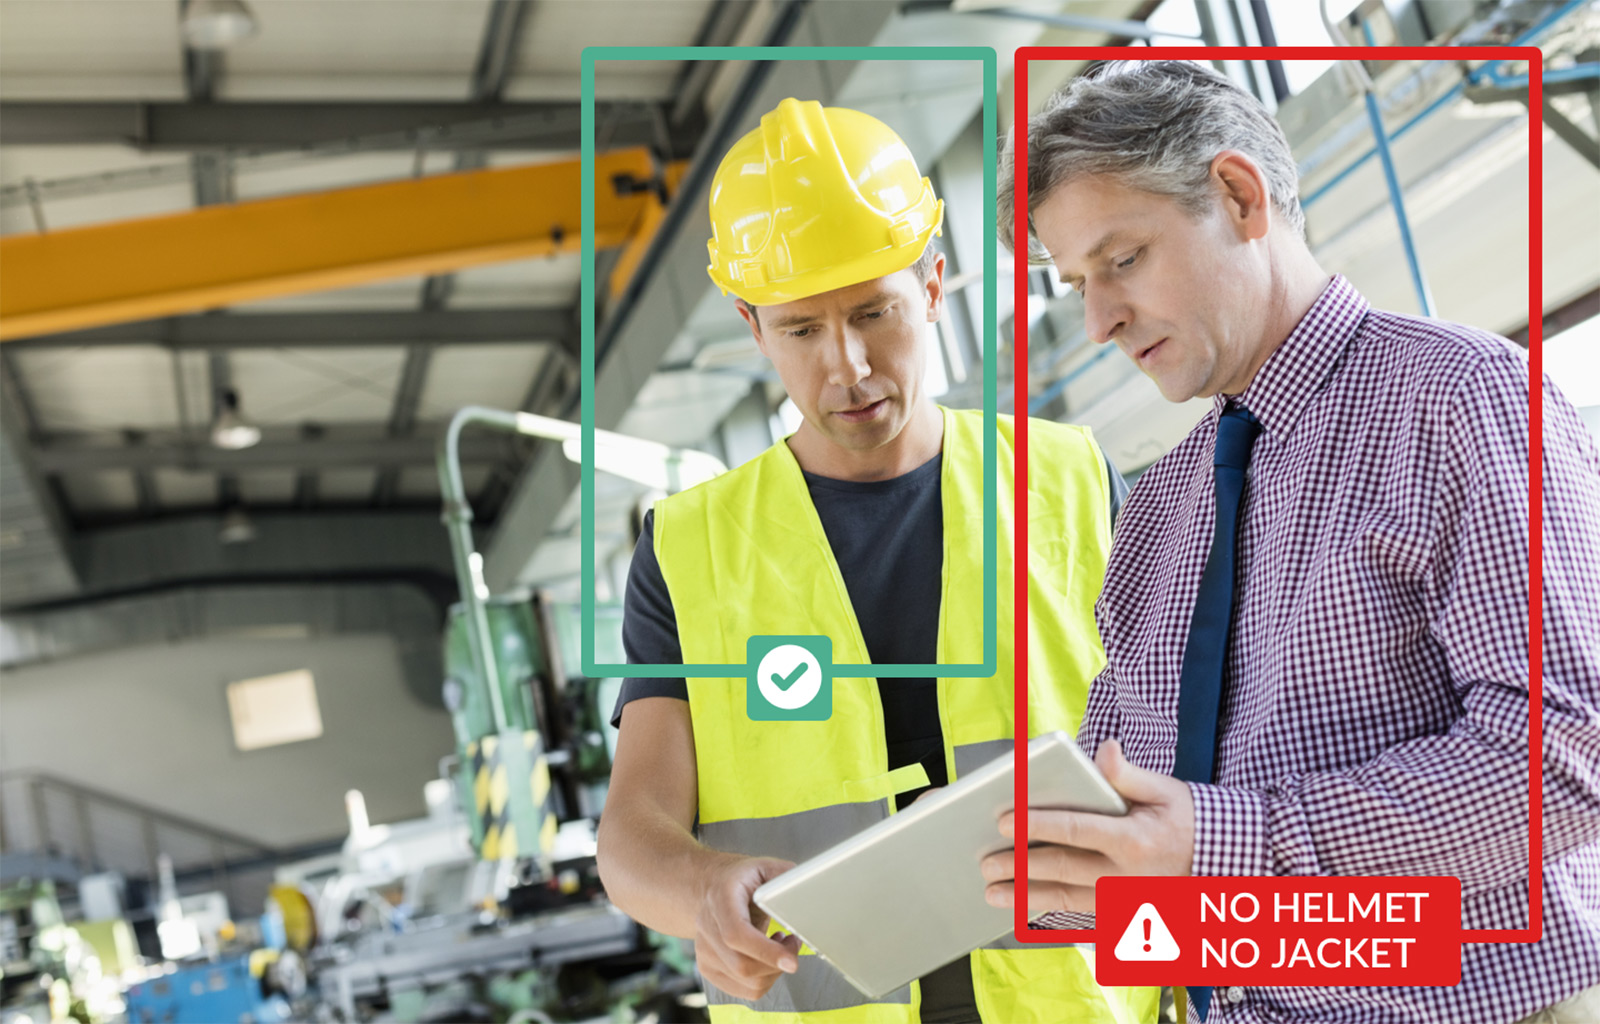 Ensure compliance with safety procedures